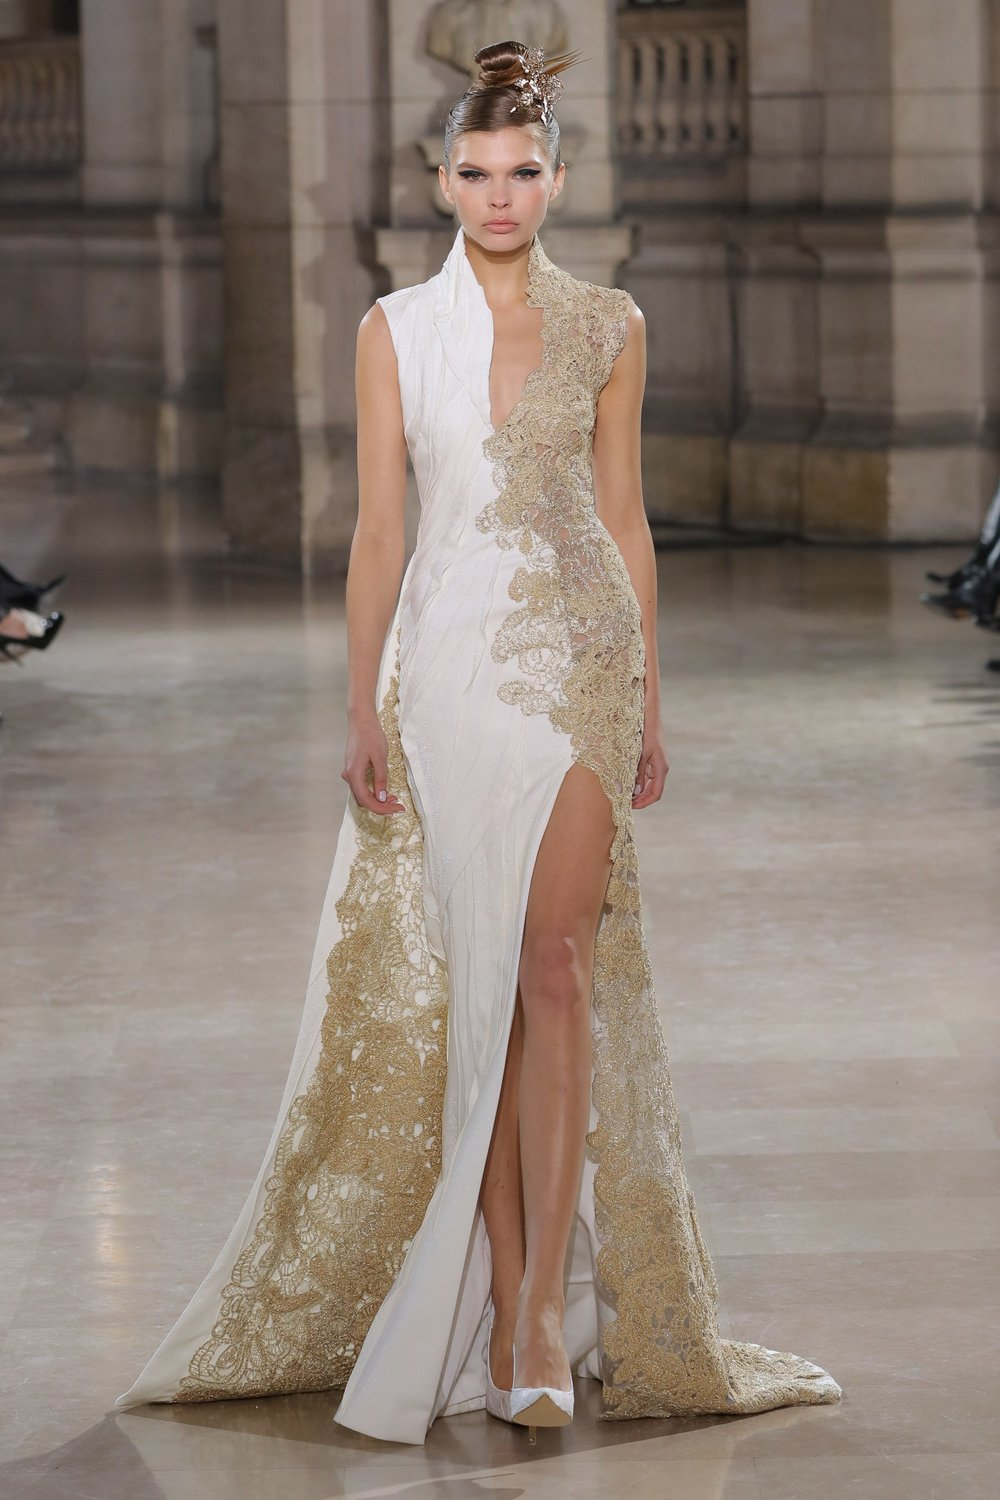 TONY_WARD_COUTURE_SS19_17.jpg